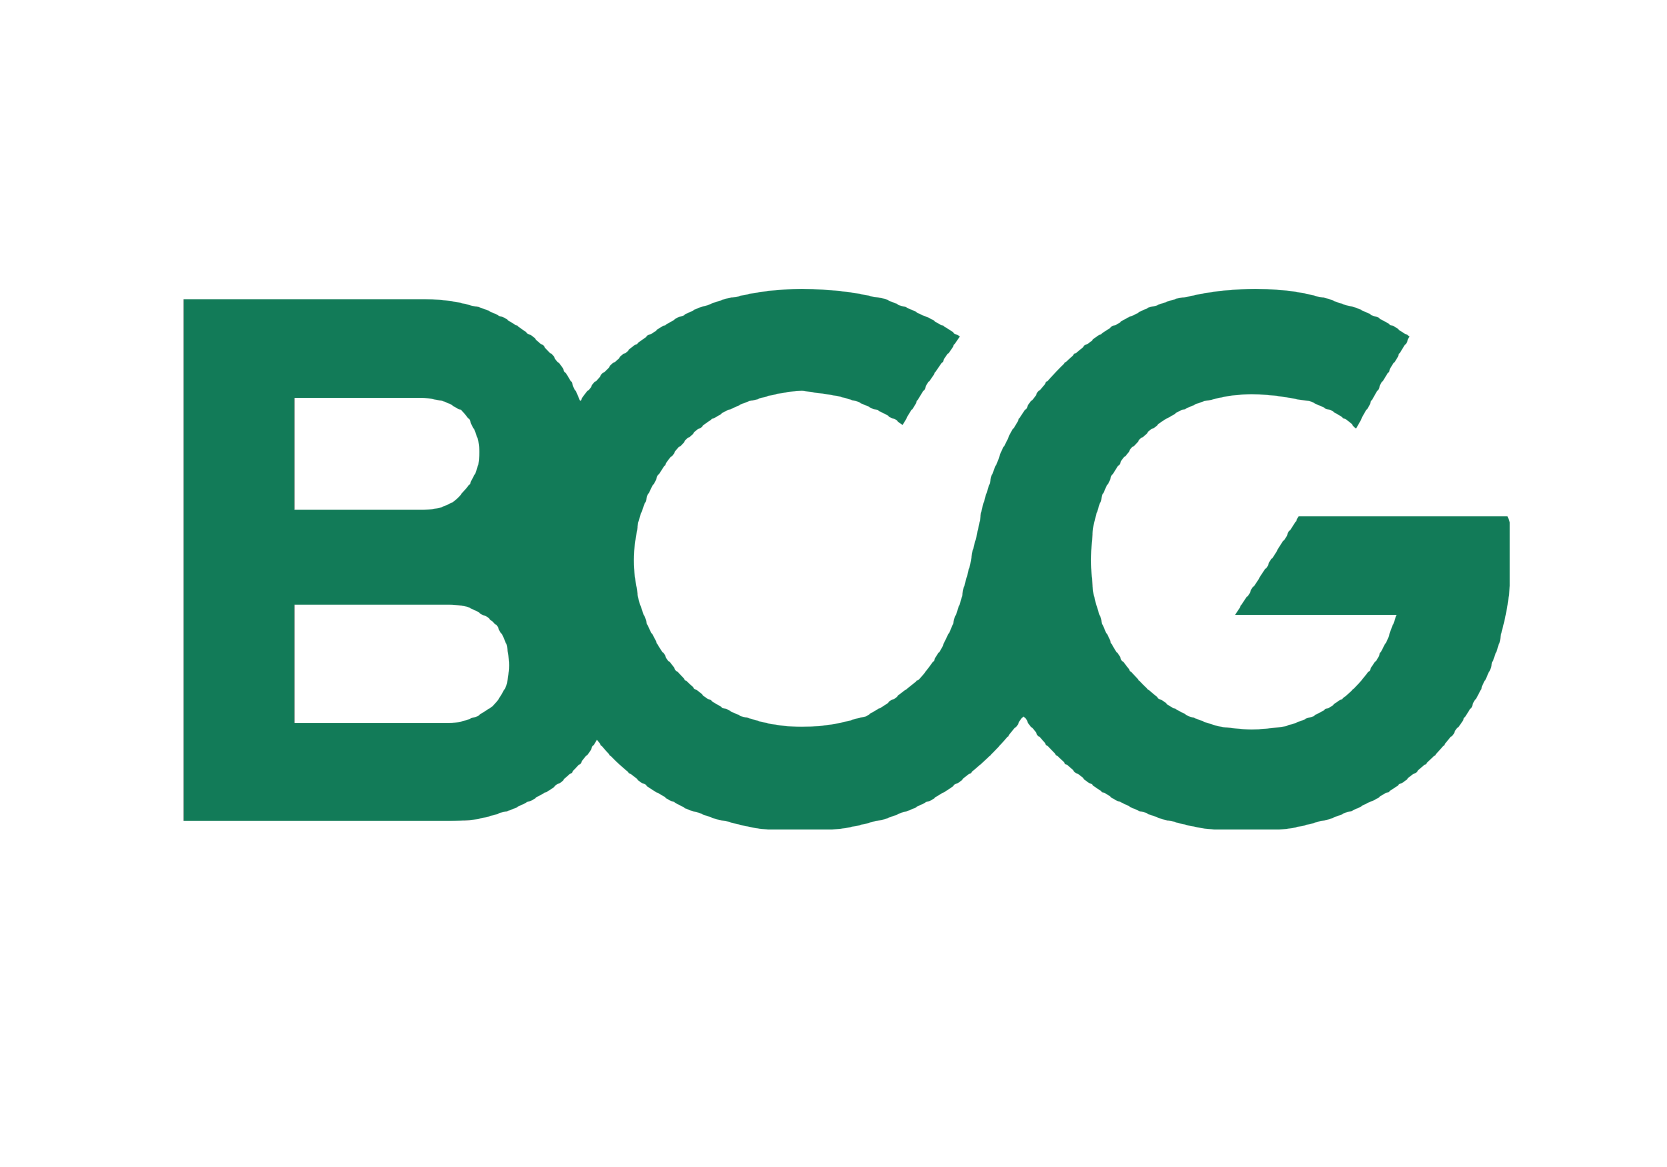 BCG - Boston Consulting Group